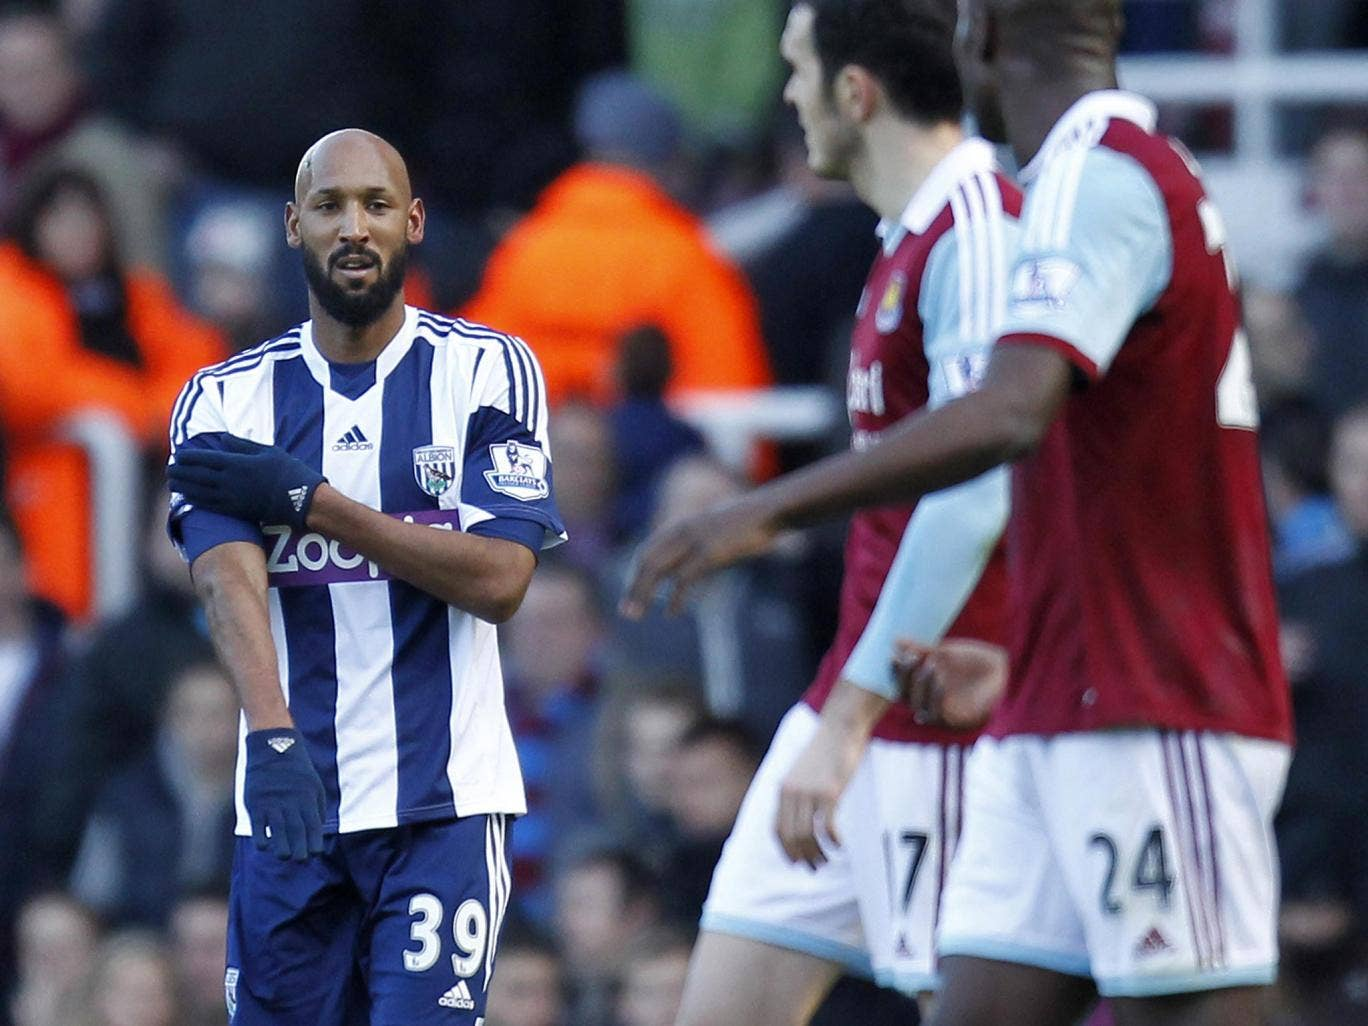 The FA wanted a longer ban for Nicolas Anelka after his gesture, but the player's counsel argued it was less serious than the Suarez case